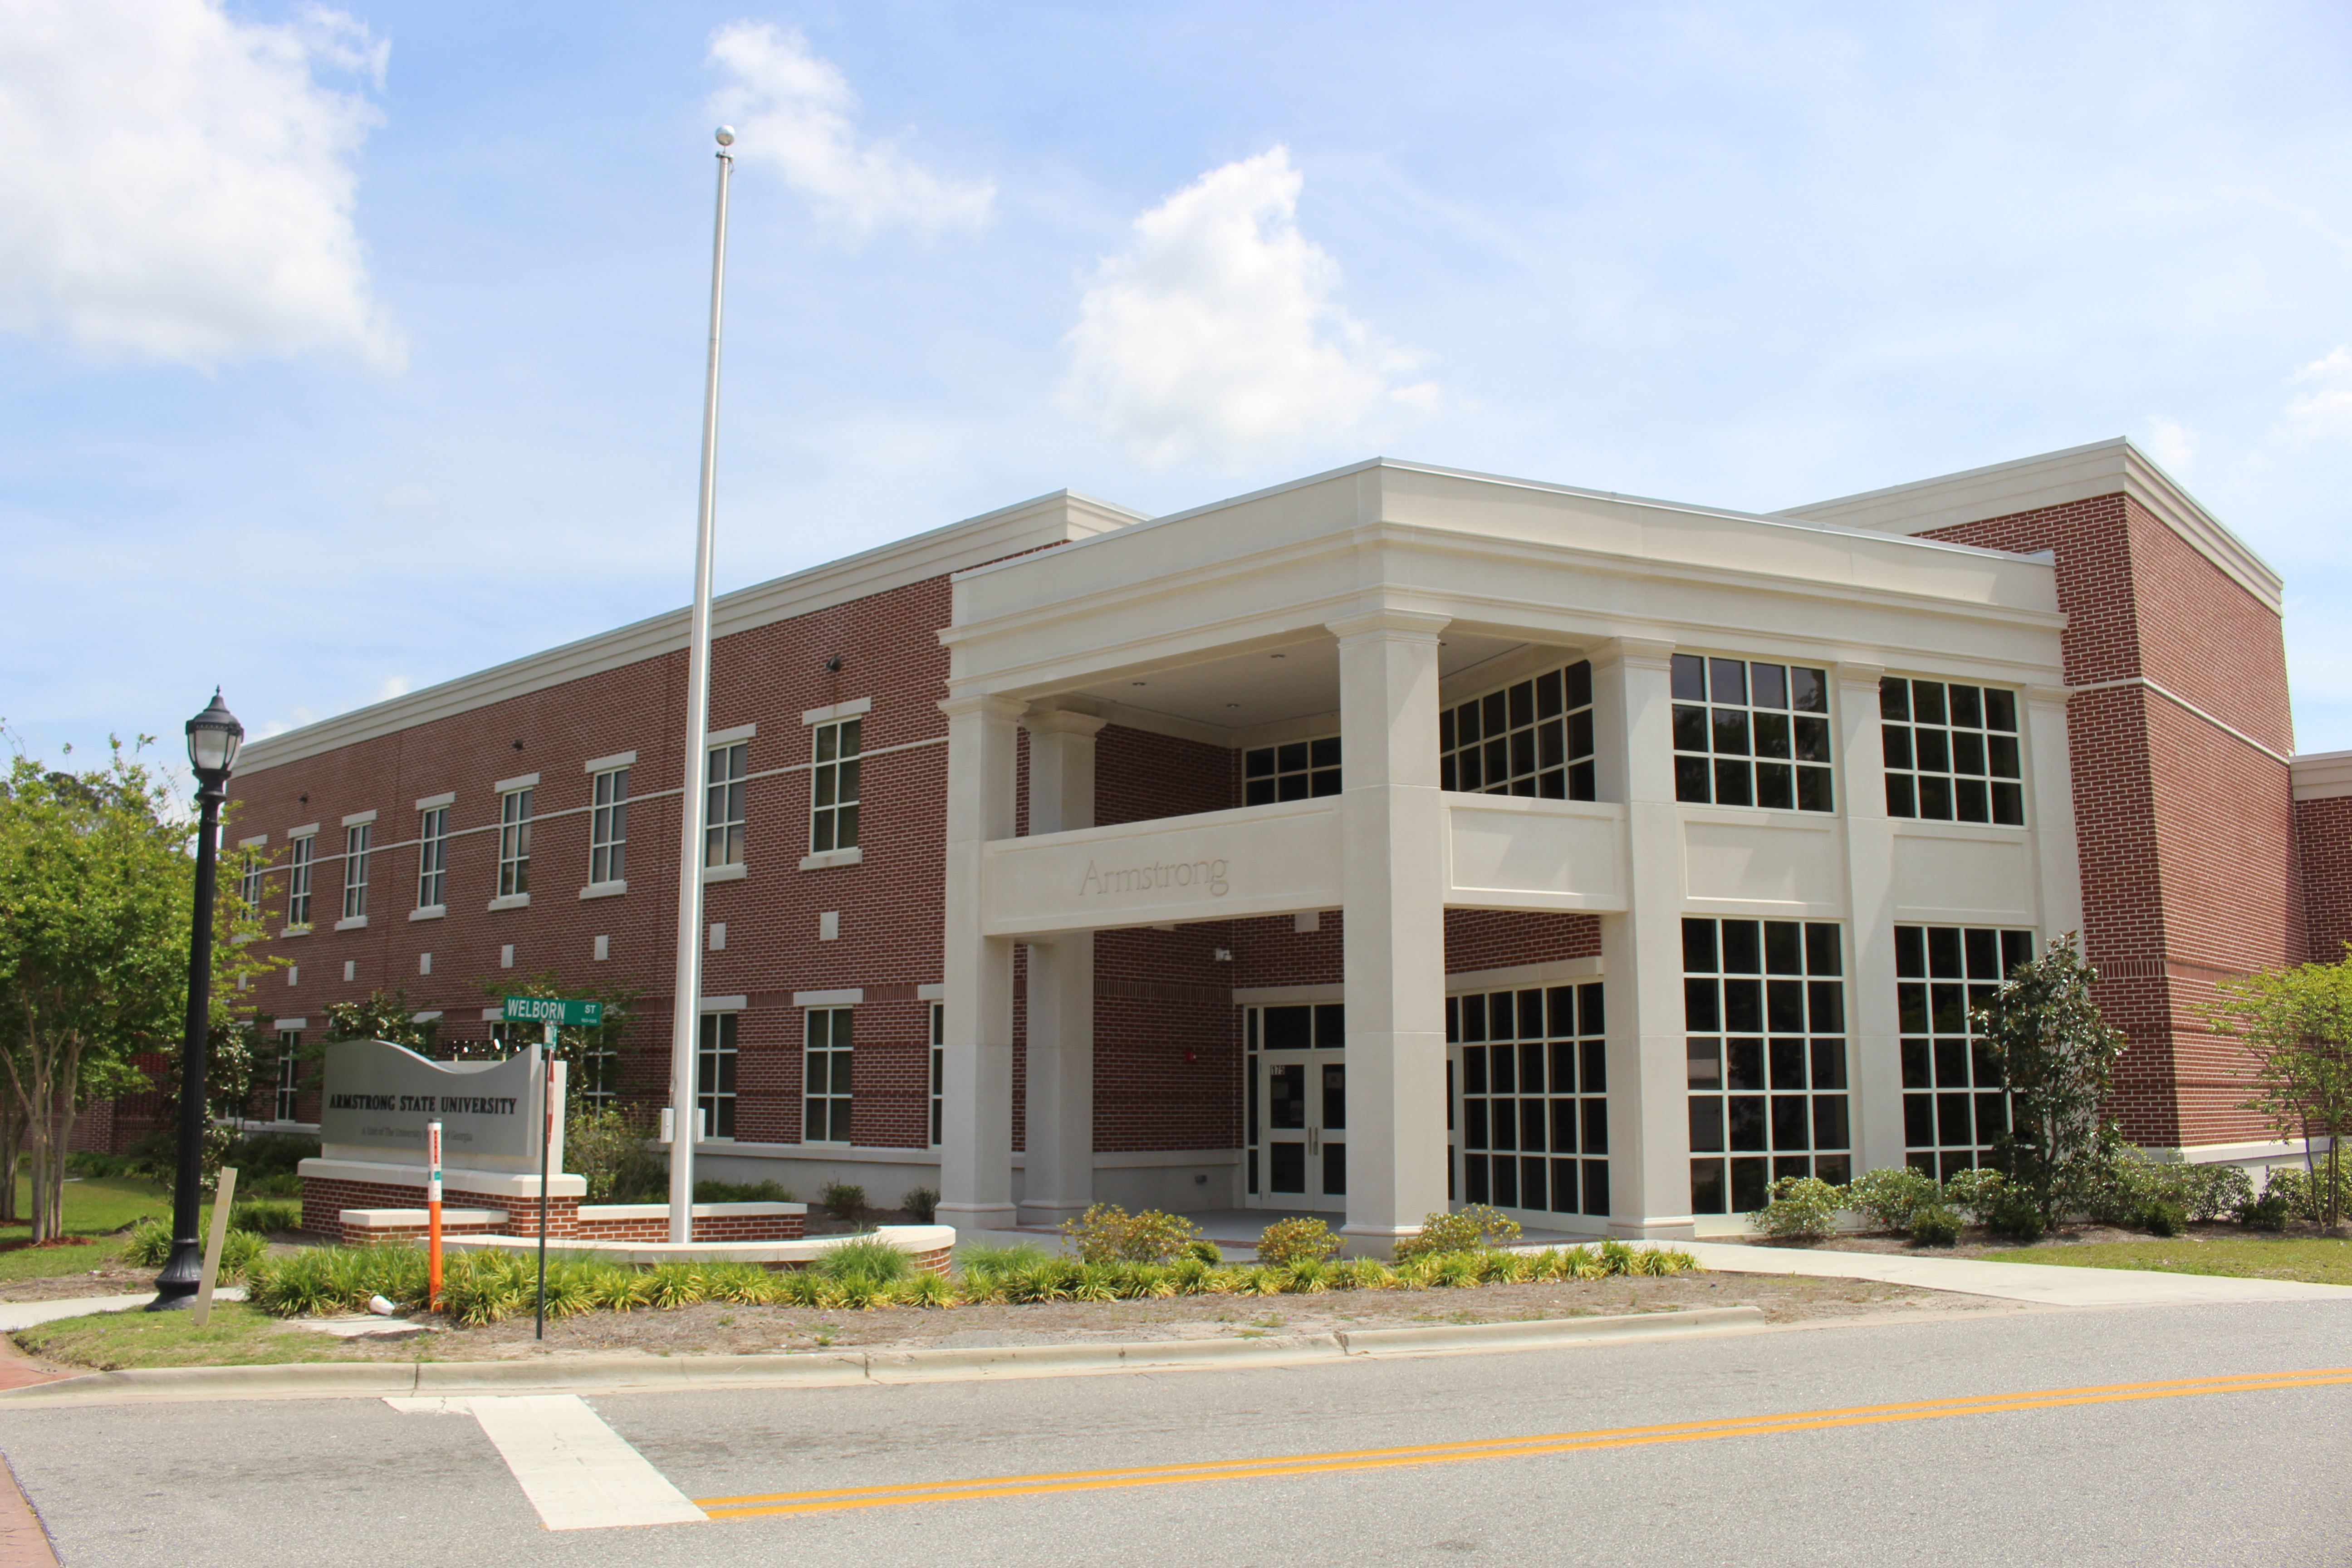 Armstrong State University >> File Armstrong State University Hinesville Jpg Wikimedia